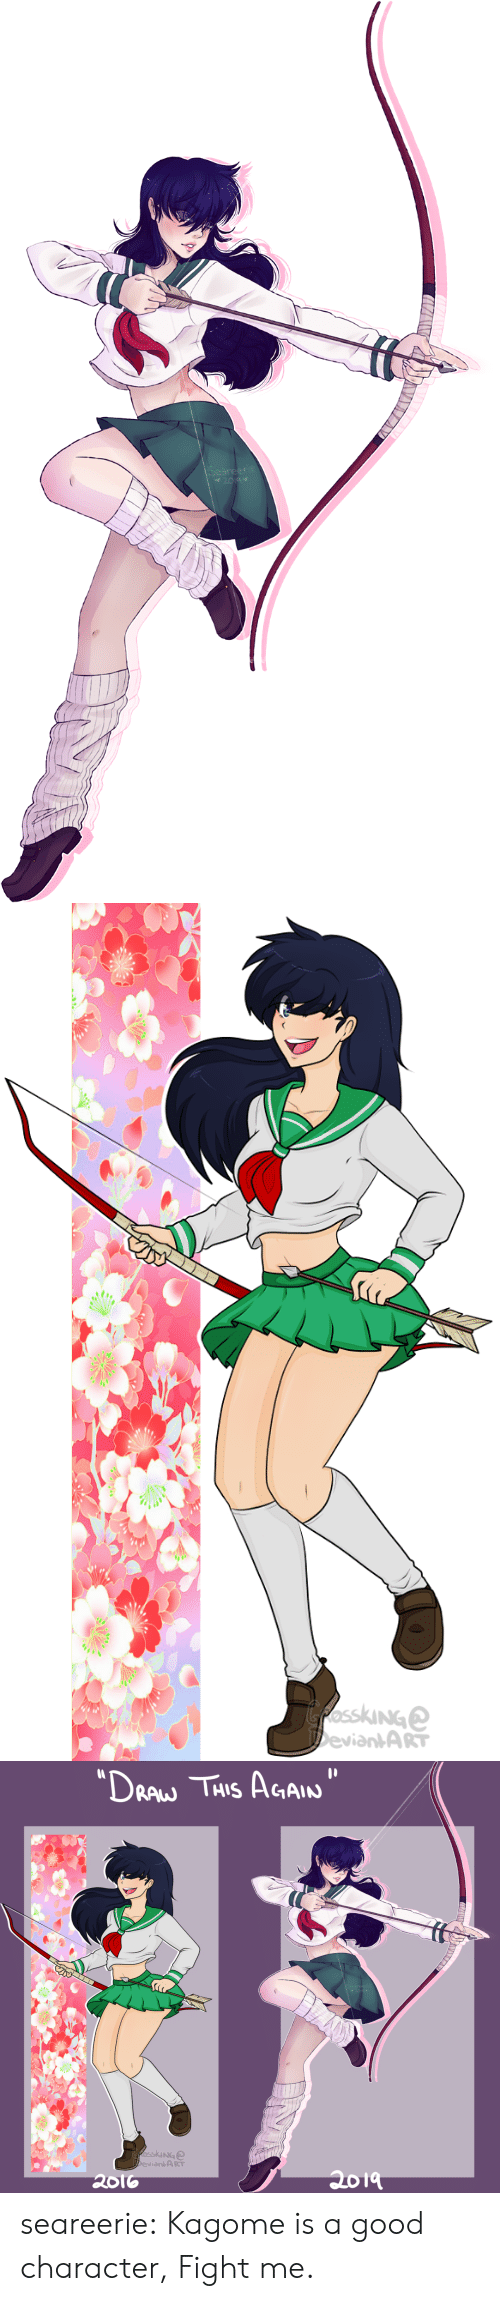 """fight me: Seareecie  2019   GfosskiNGe  DeviantART   """"DRAW THIS AGAIN  Seareecie  2019  fosskinG  DeviantART  2019  2016 seareerie:  Kagome is a good character, Fight me."""